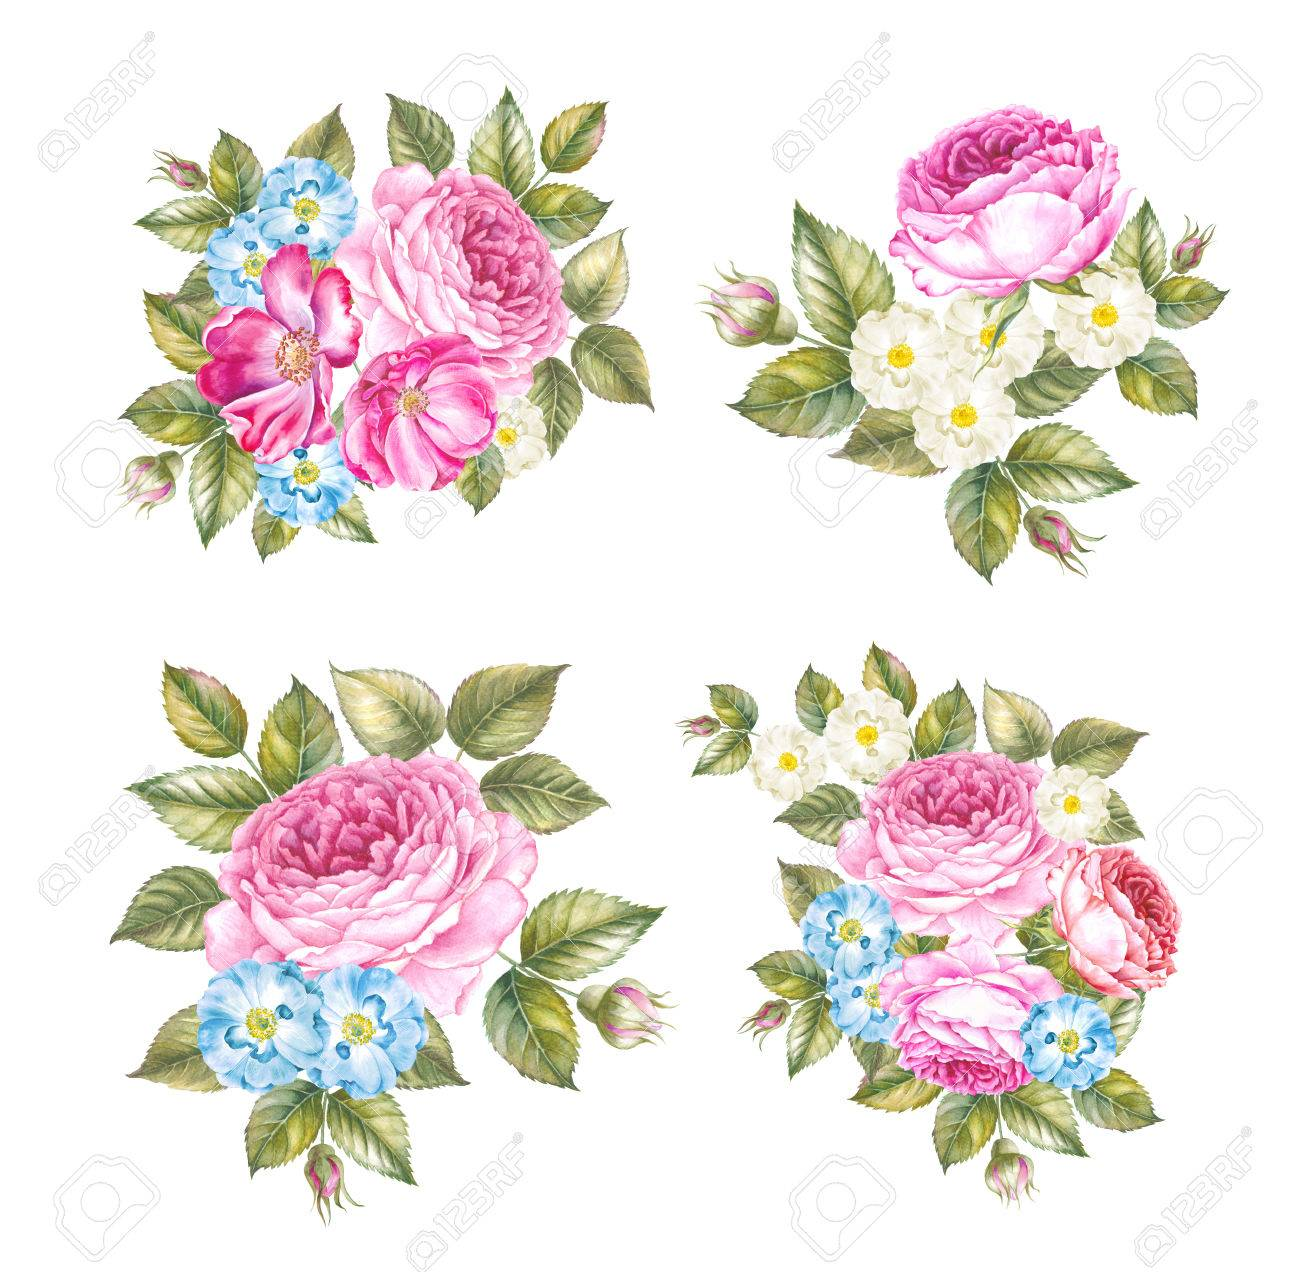 Set of spring flowers wreaths collection of four garlands isolated set of spring flowers wreaths collection of four garlands isolated over white backround beautiful mightylinksfo